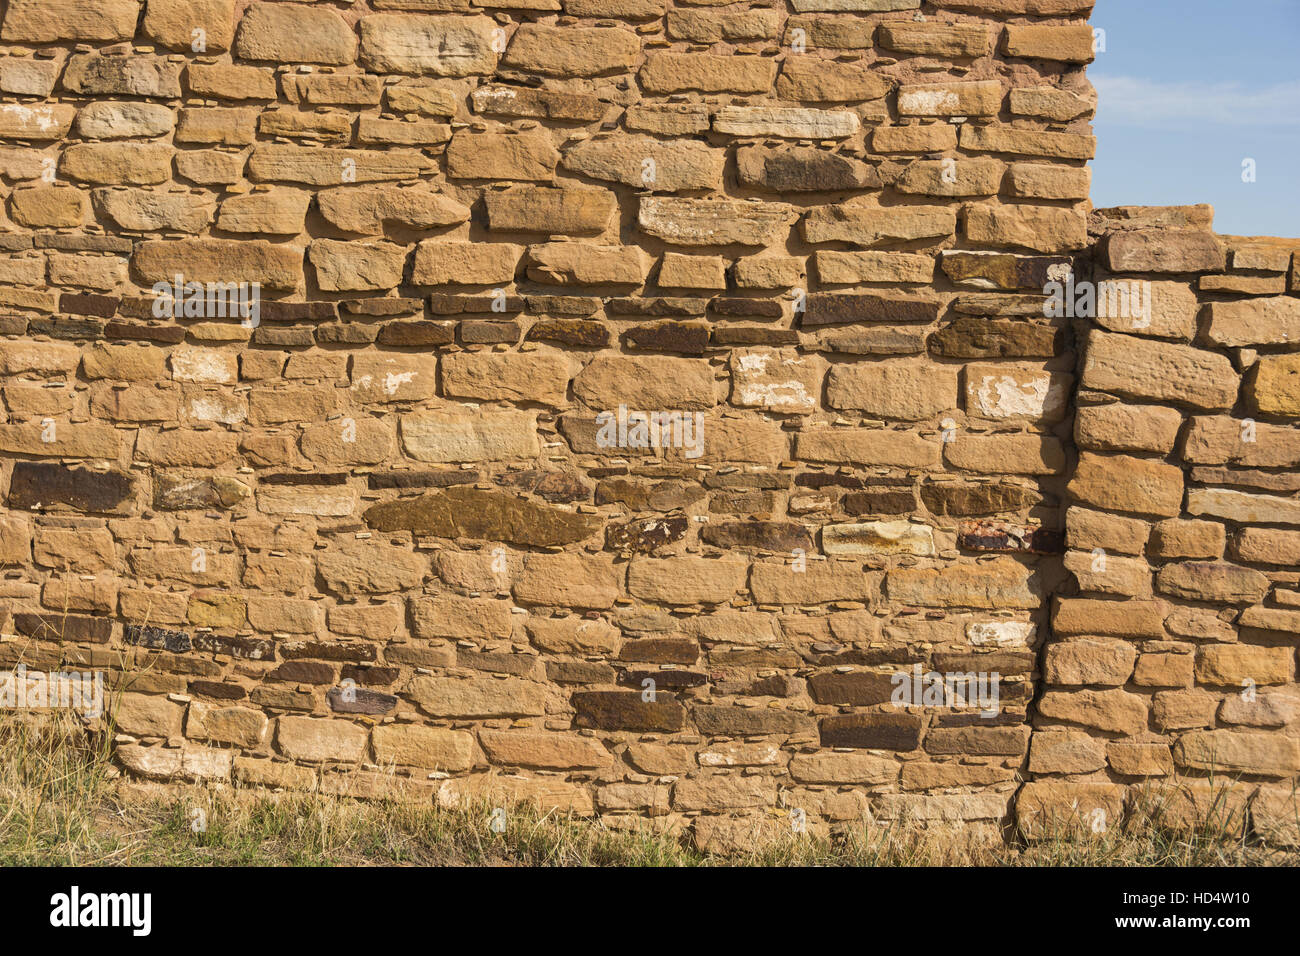 Canyons of the Ancients National Monument, Lowry Pueblo Ruin - Stock Image